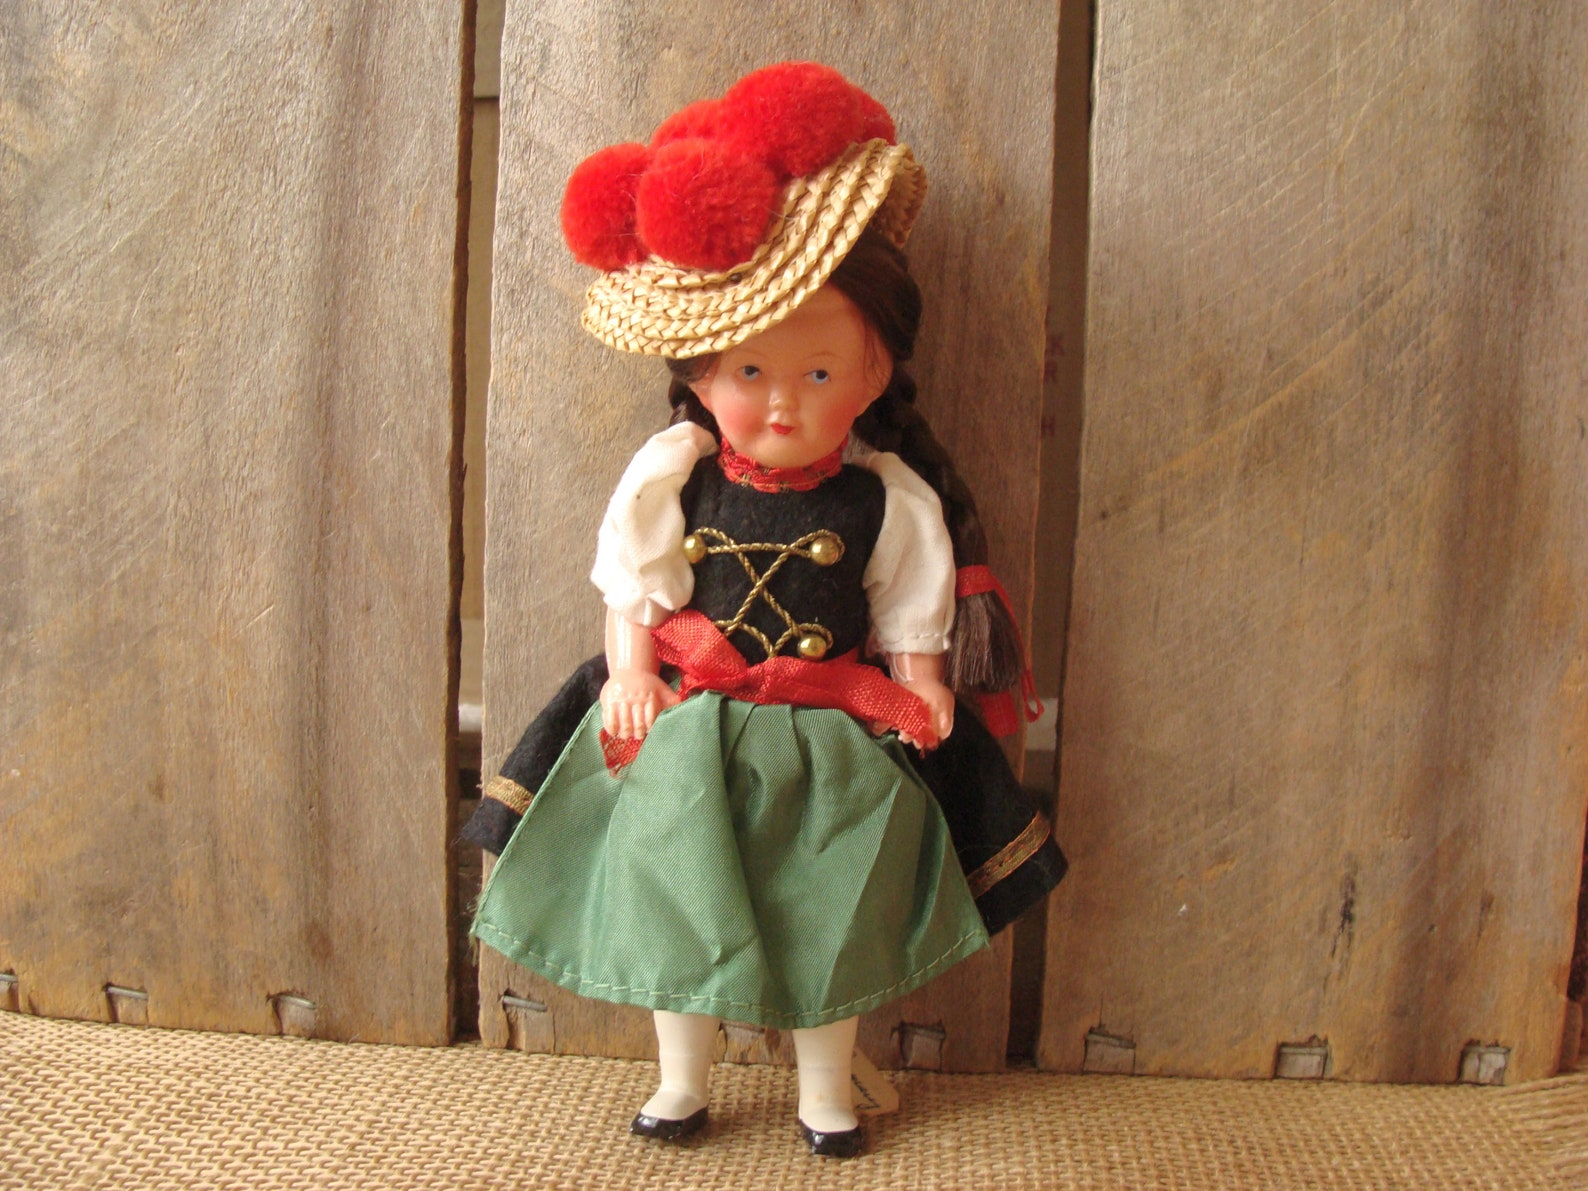 Vintage Black Forest German folk doll with bollenhut hat - 7